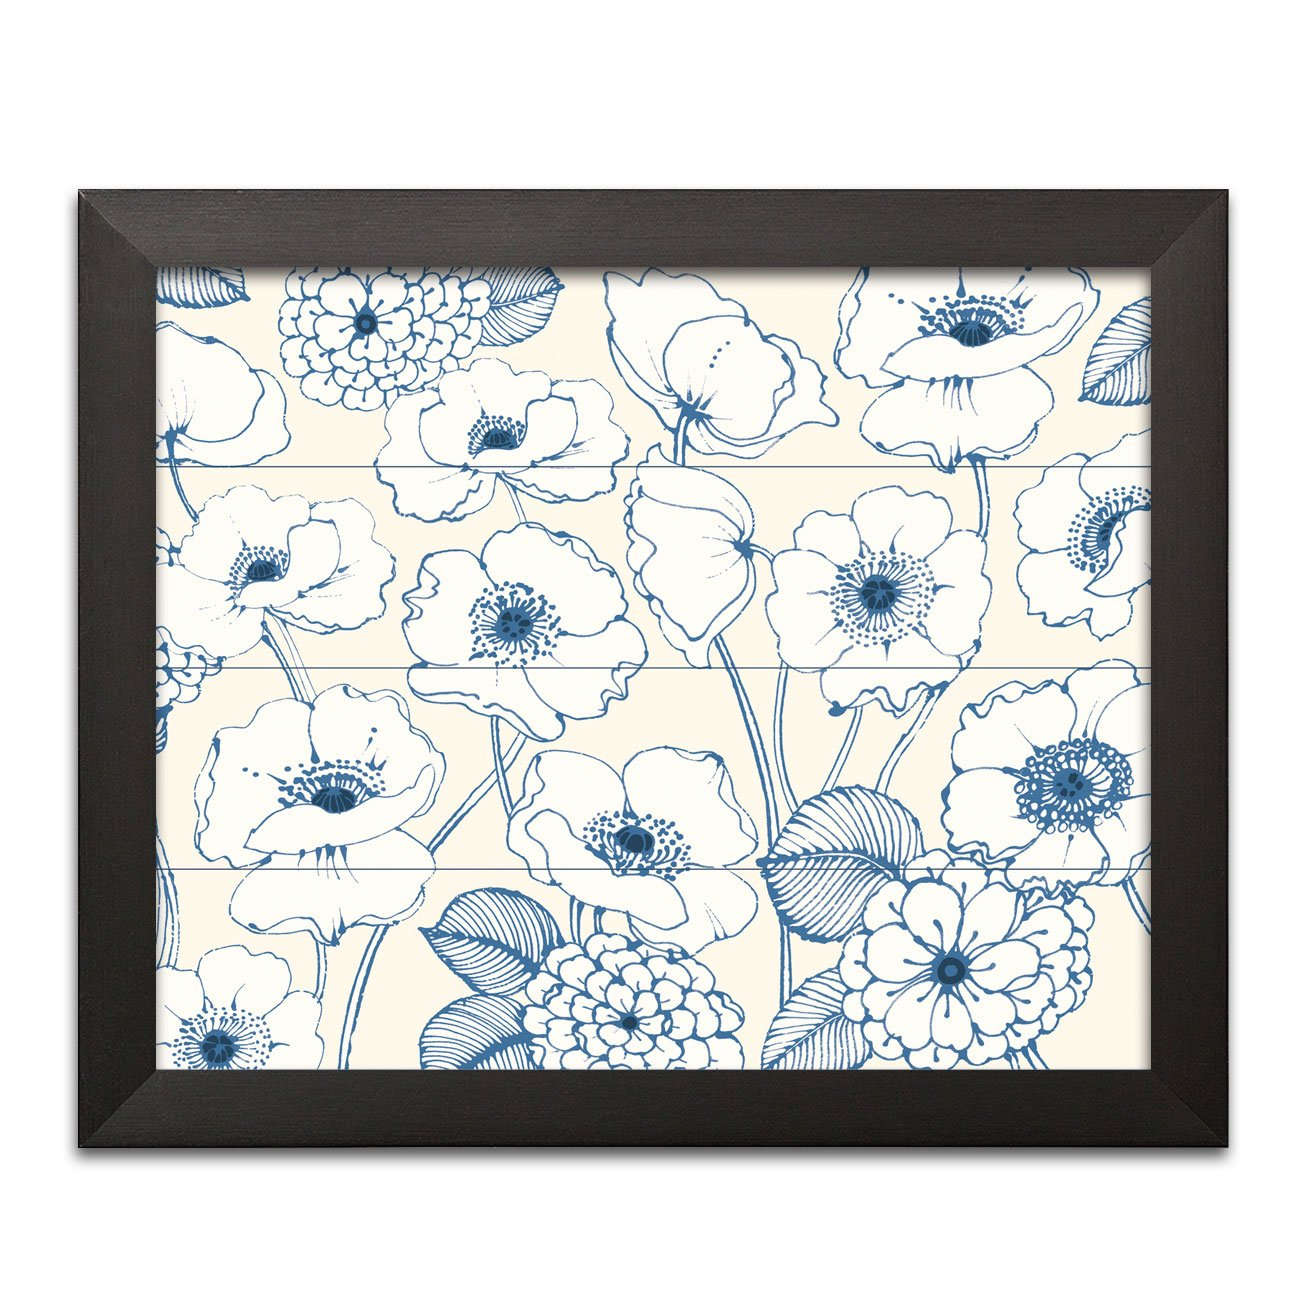 Gango Home Decor Shabby-Chic Pen and Ink Flowers I by Wild Apple Portfolio (Ready to Hang); One 16x12in Black Framed Print